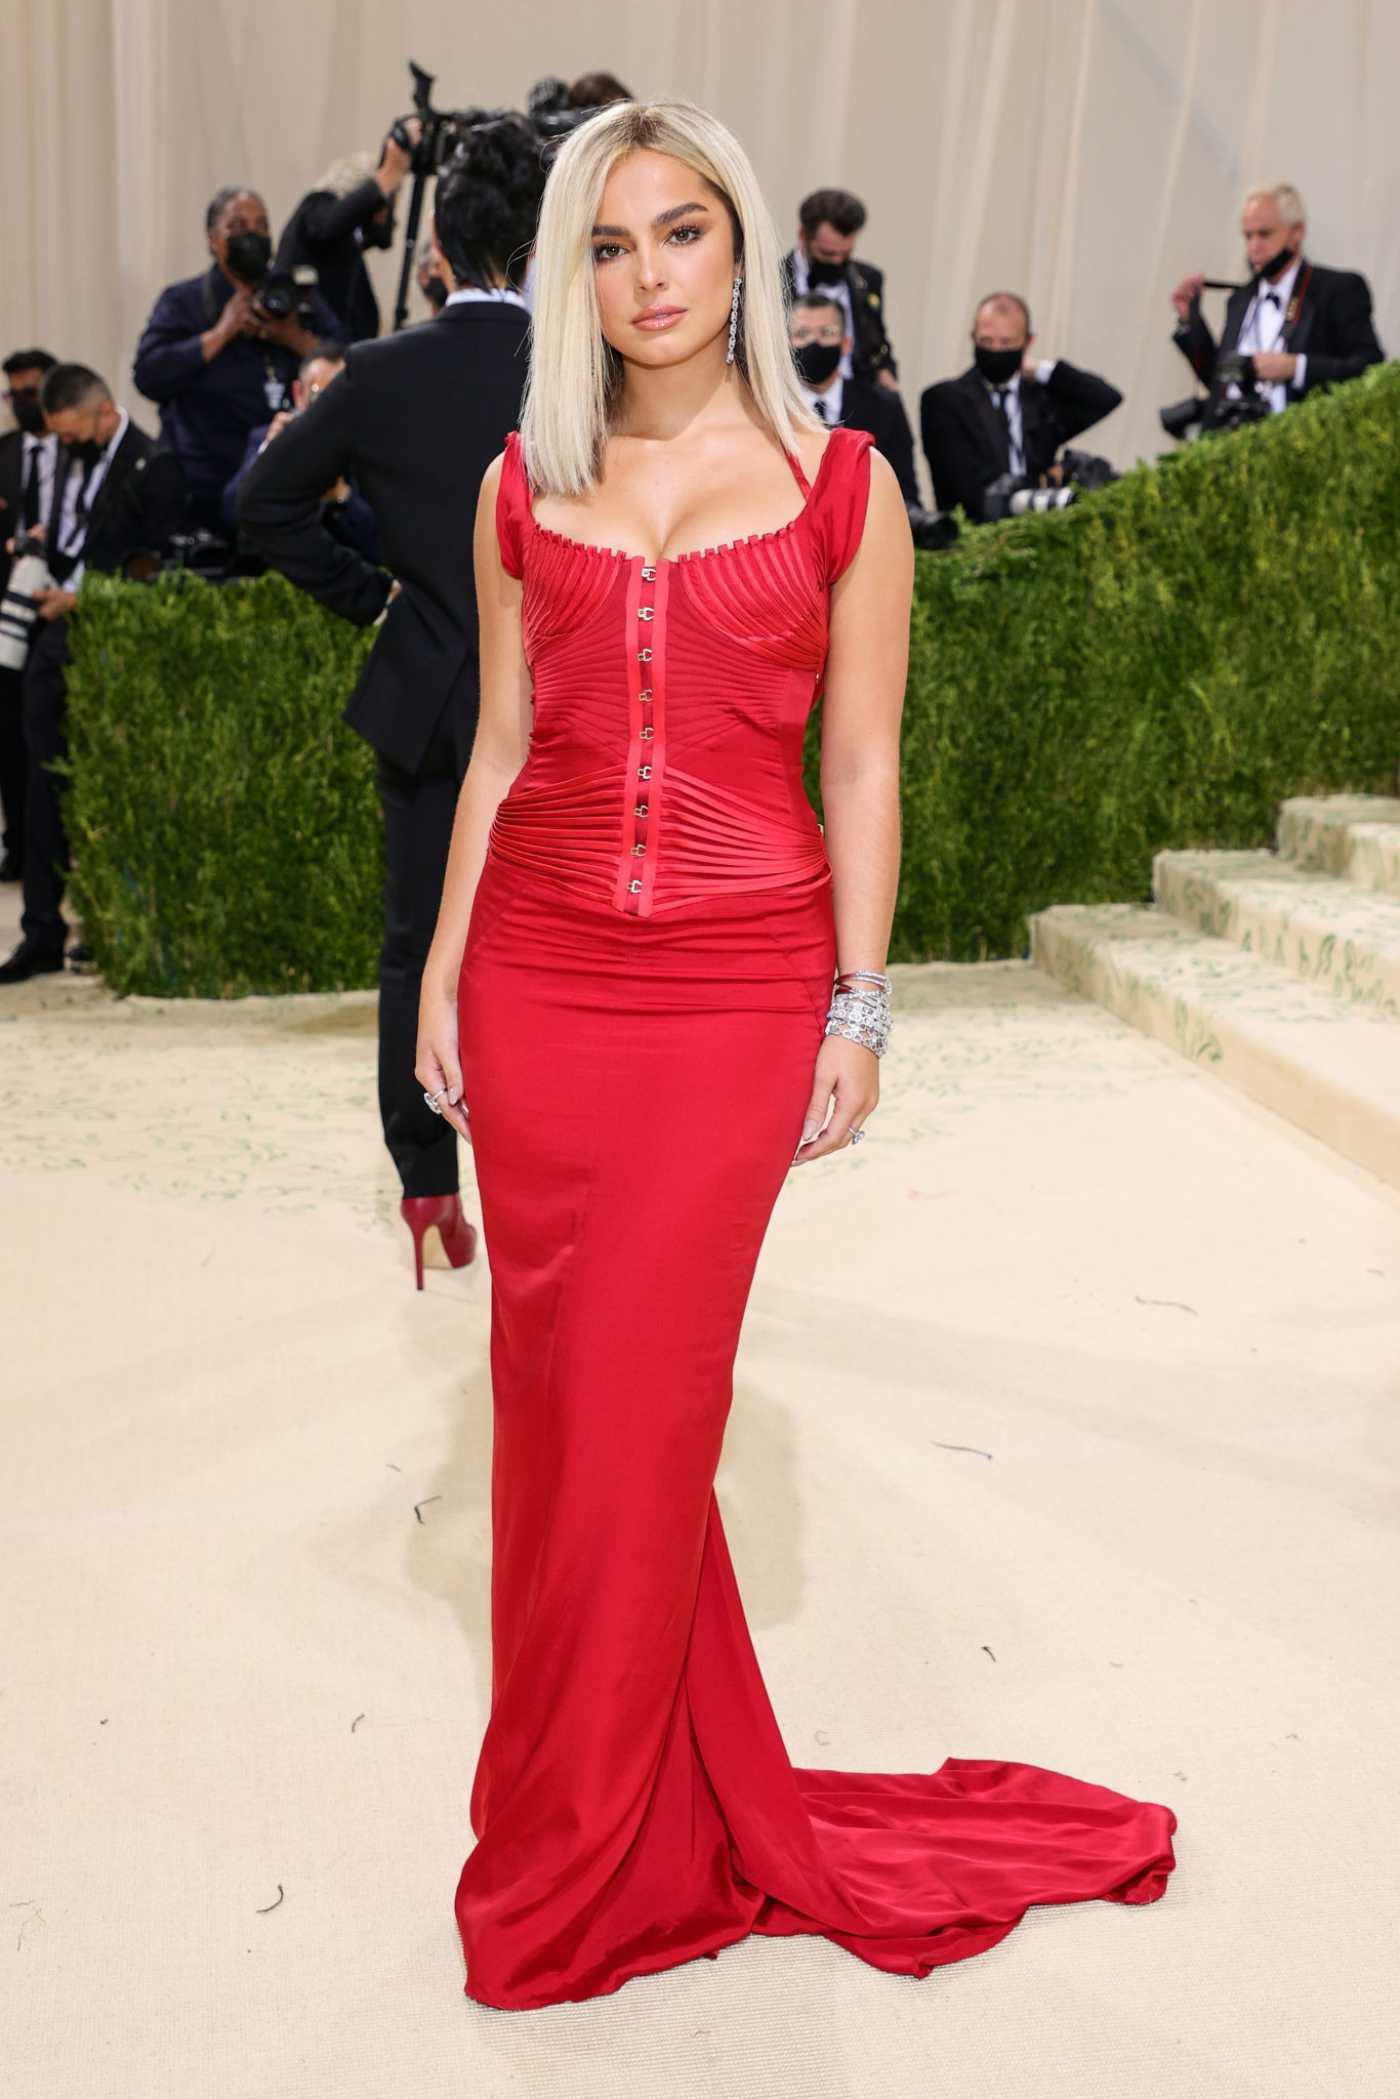 Addison Rae Attends 2021 Met Gala In America: A Lexicon of Fashion at Metropolitan Museum of Art in New York City 09/13/2021